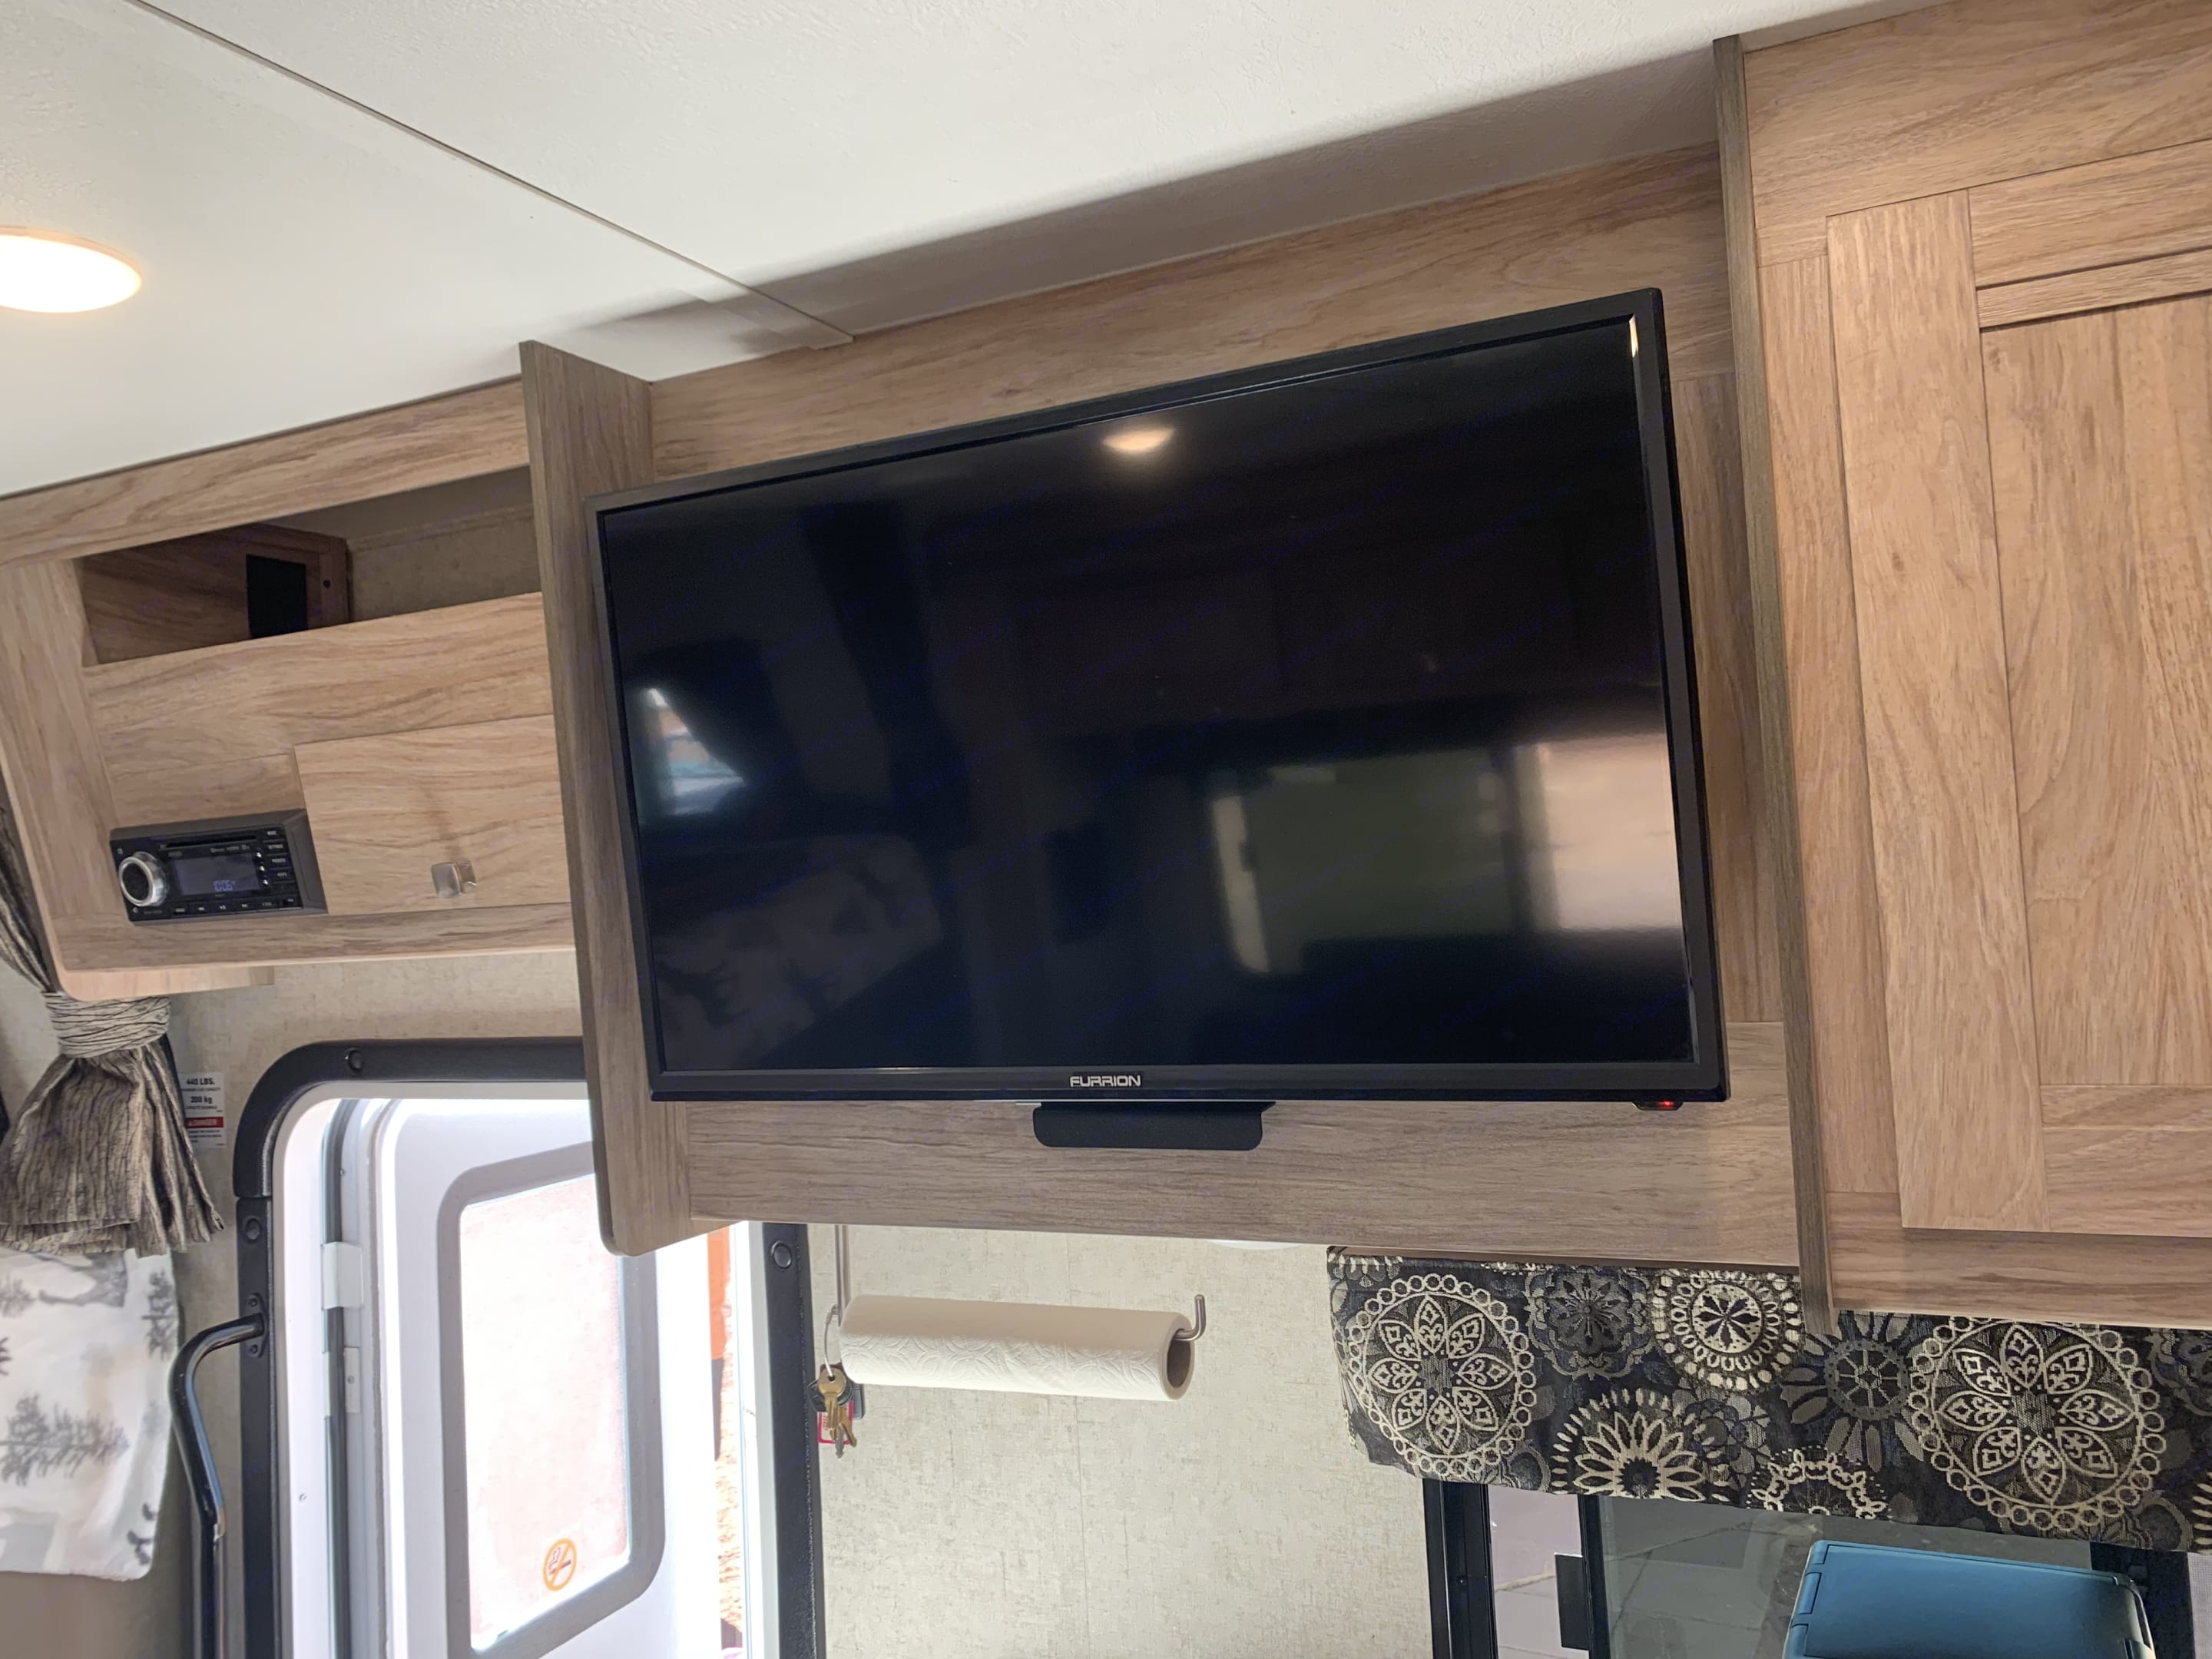 Living area 32 in TV (Roku hooked up). Forest River Forester 2019